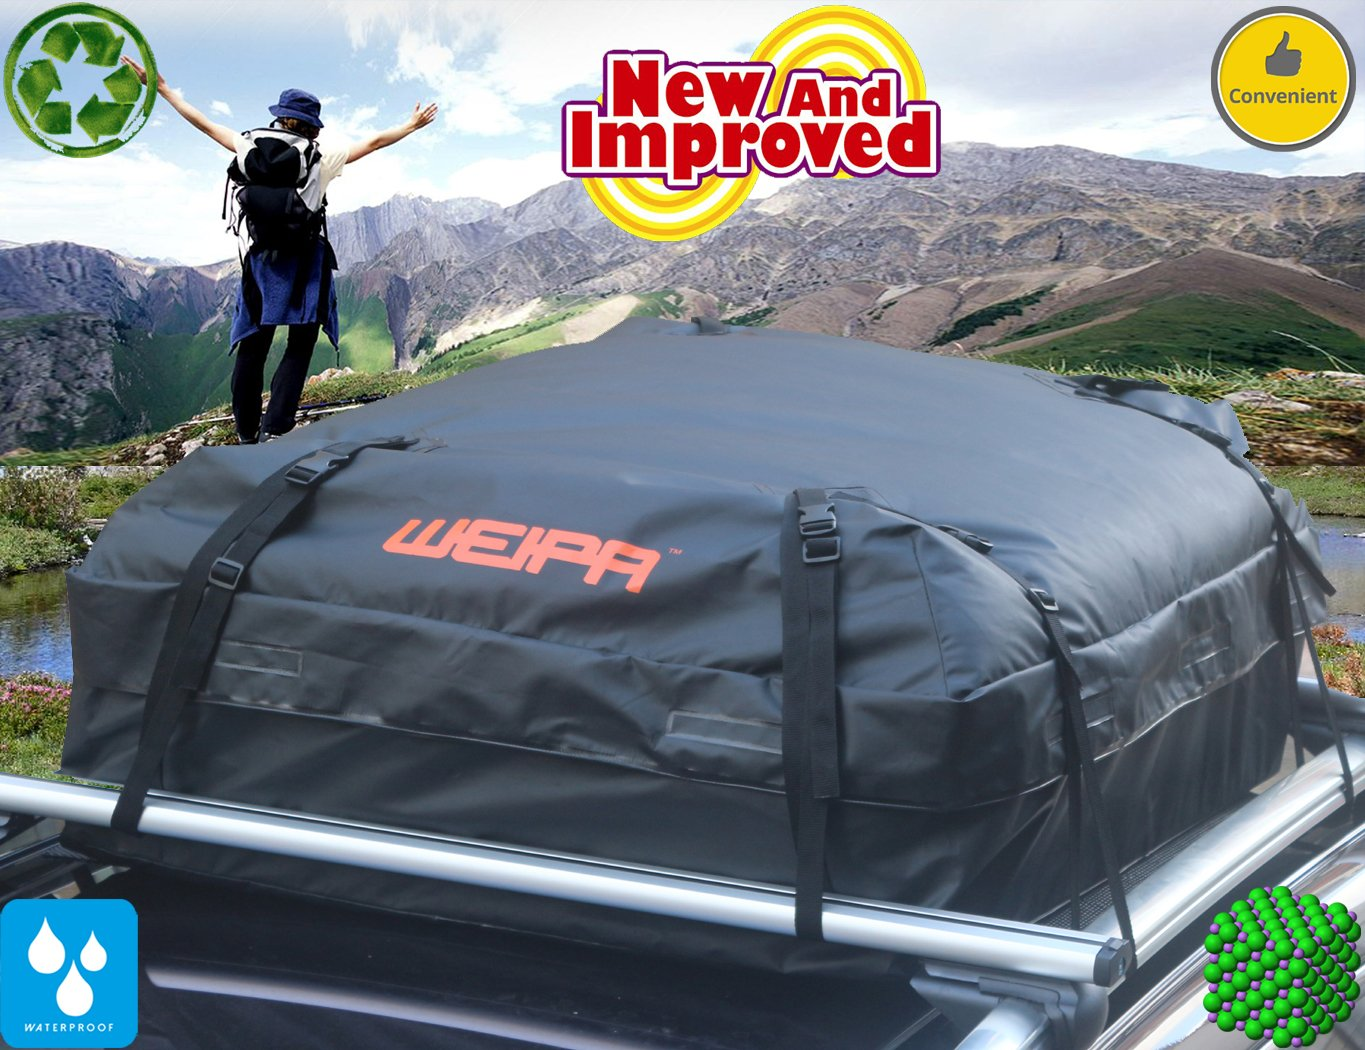 WEIPA® Waterproof Roof Top Cargo Bag- Non Slip Roof Mat & Storage bag, For Any Car Van or SUV (15 Cubic Feet)